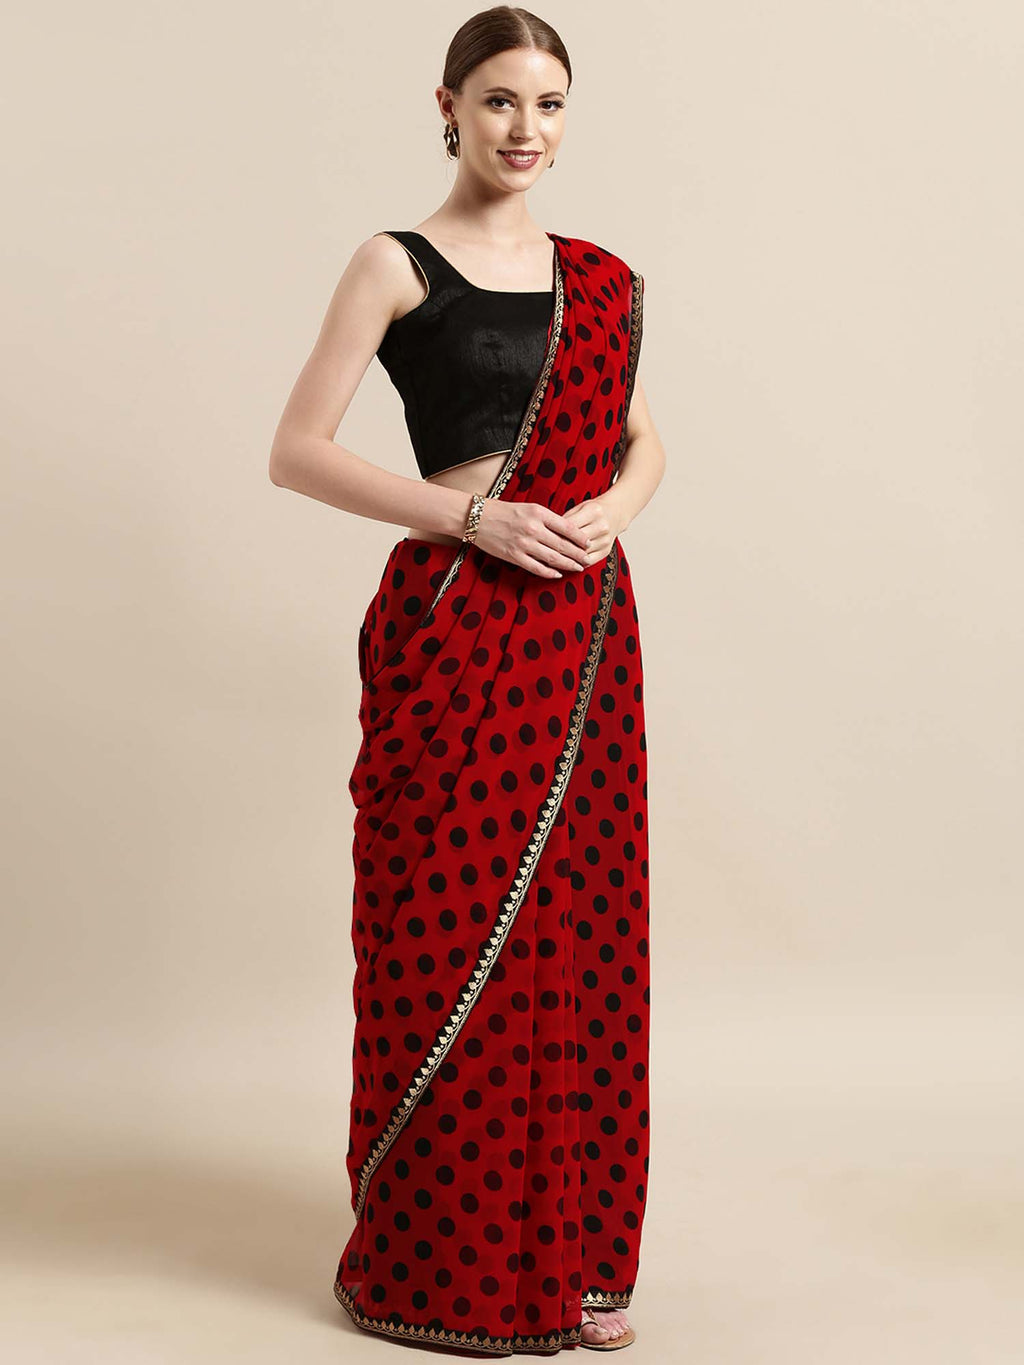 Red And Black Poly Georgette Polka Dots Print With Printed Lace And Solid Dupion Blouse - Riviera Closet